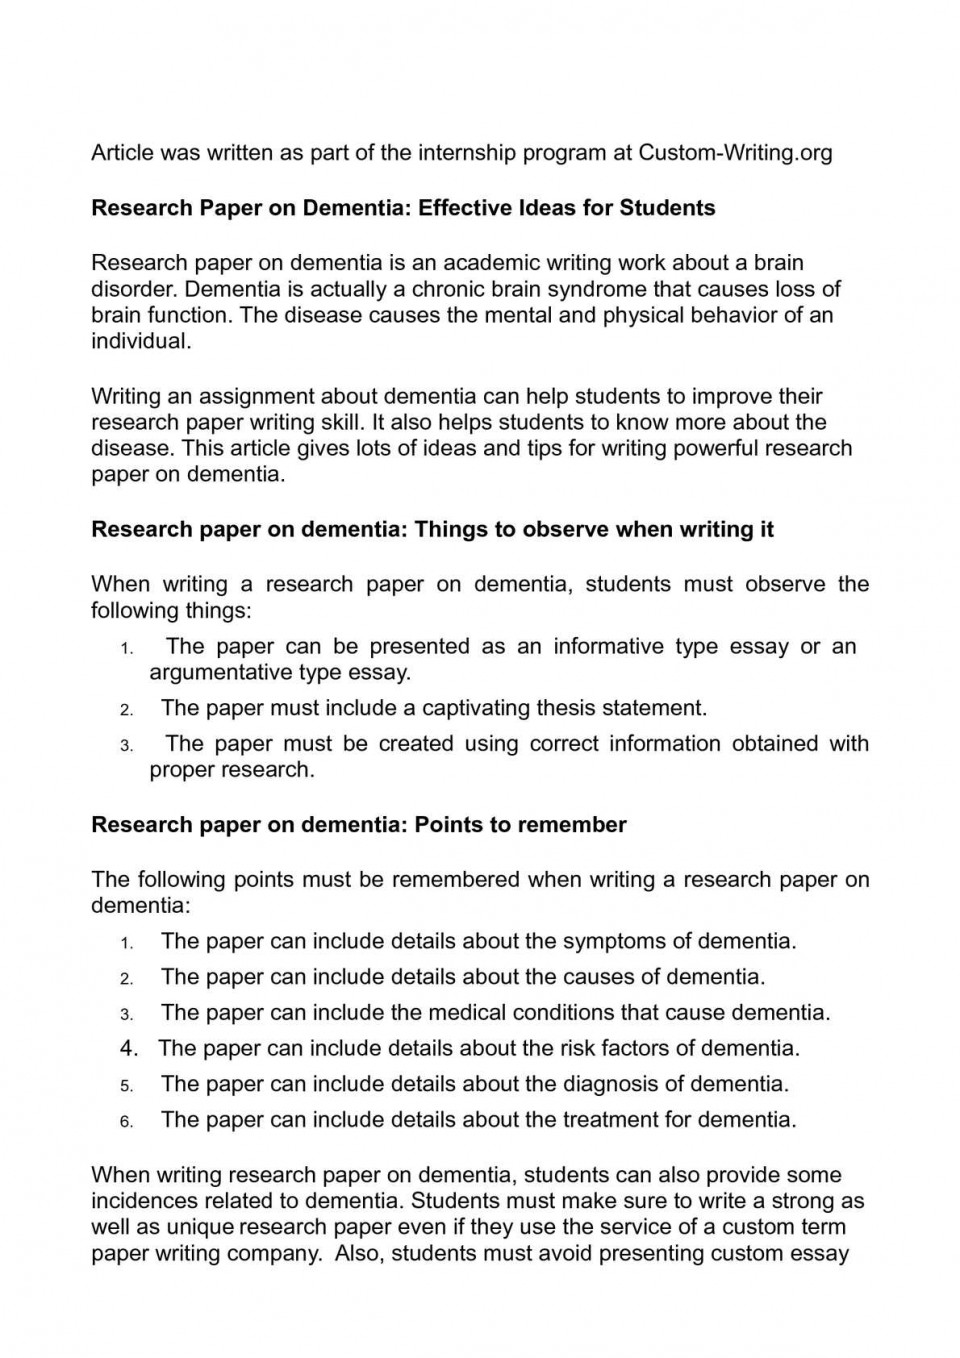 009 Research Paper Unique Ideas Imposing Titles For High School Students In Psychology Biology 960